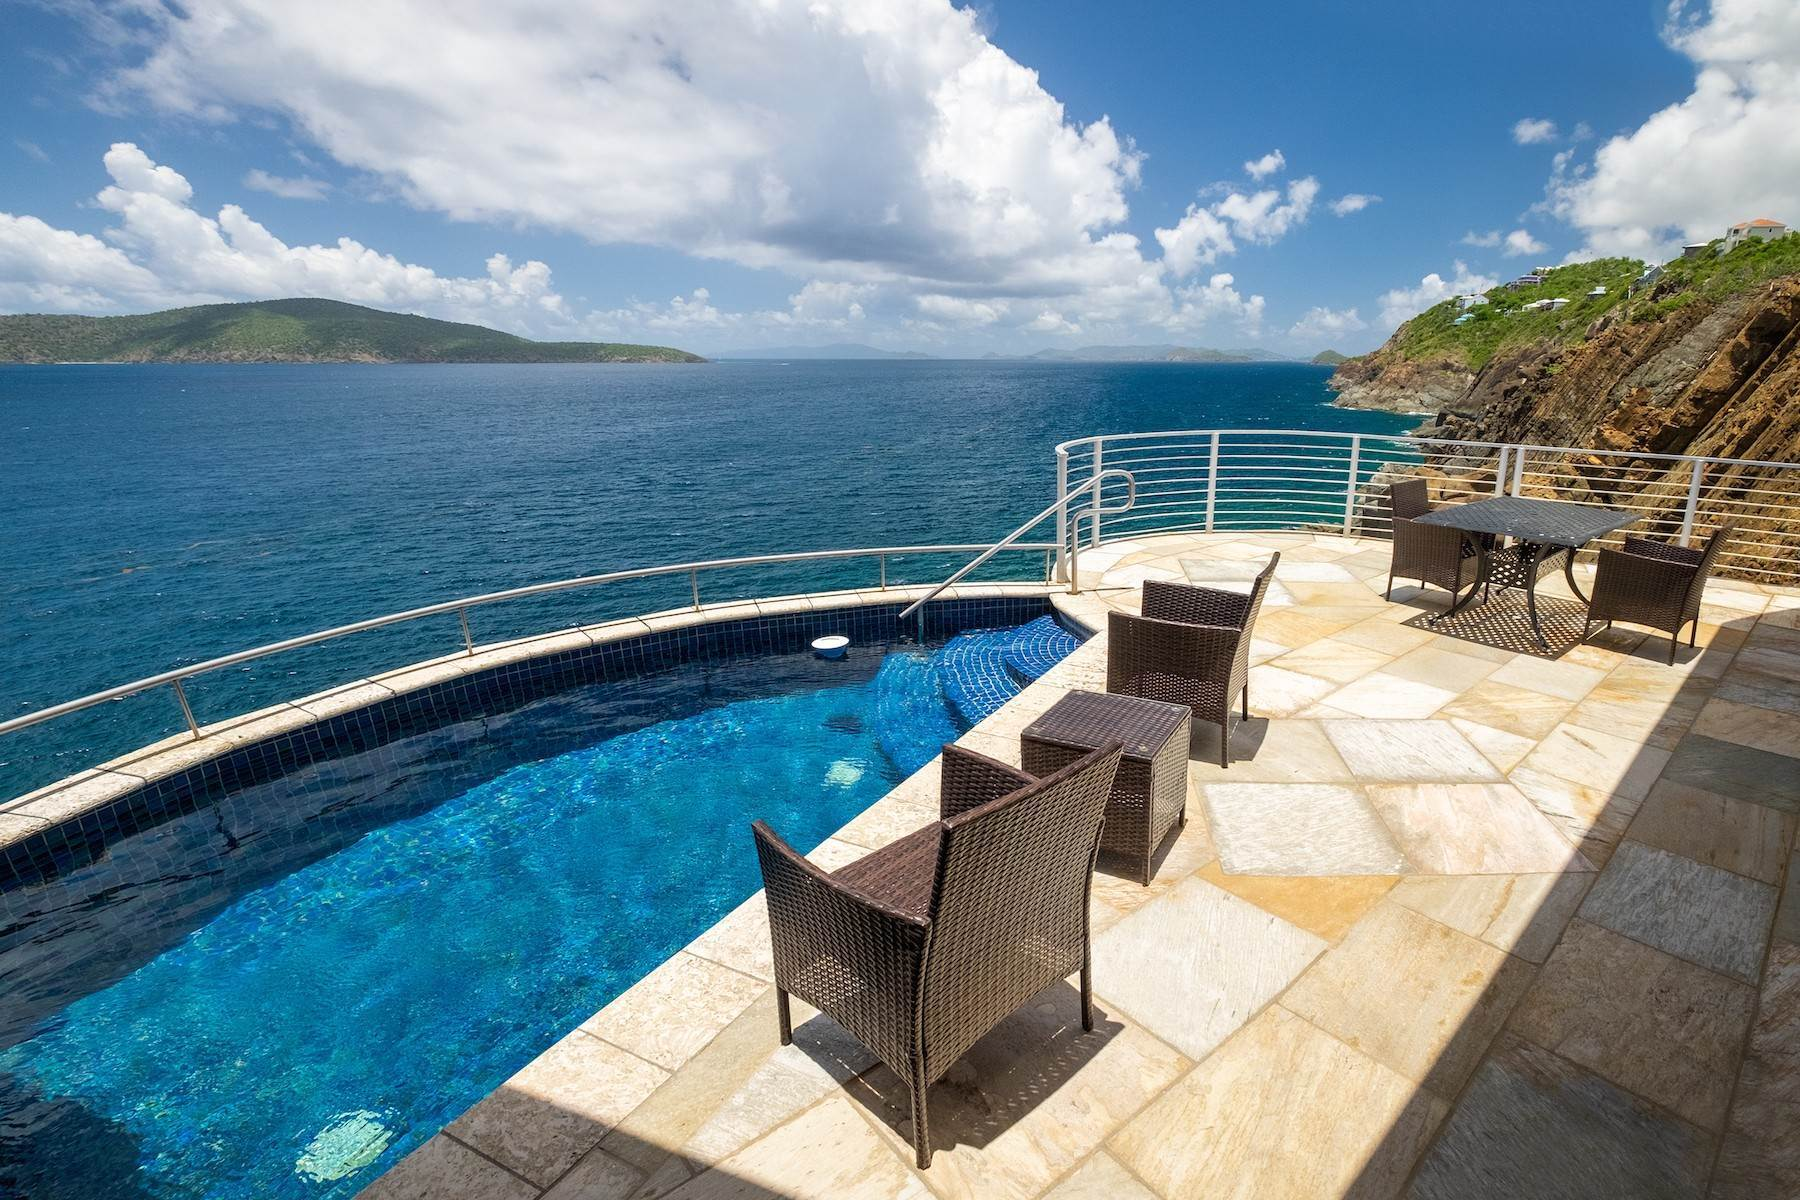 Single Family Homes for Sale at Picaro Point/Peterborg 9-2-11 Peterborg St Thomas, Virgin Islands 00802 United States Virgin Islands